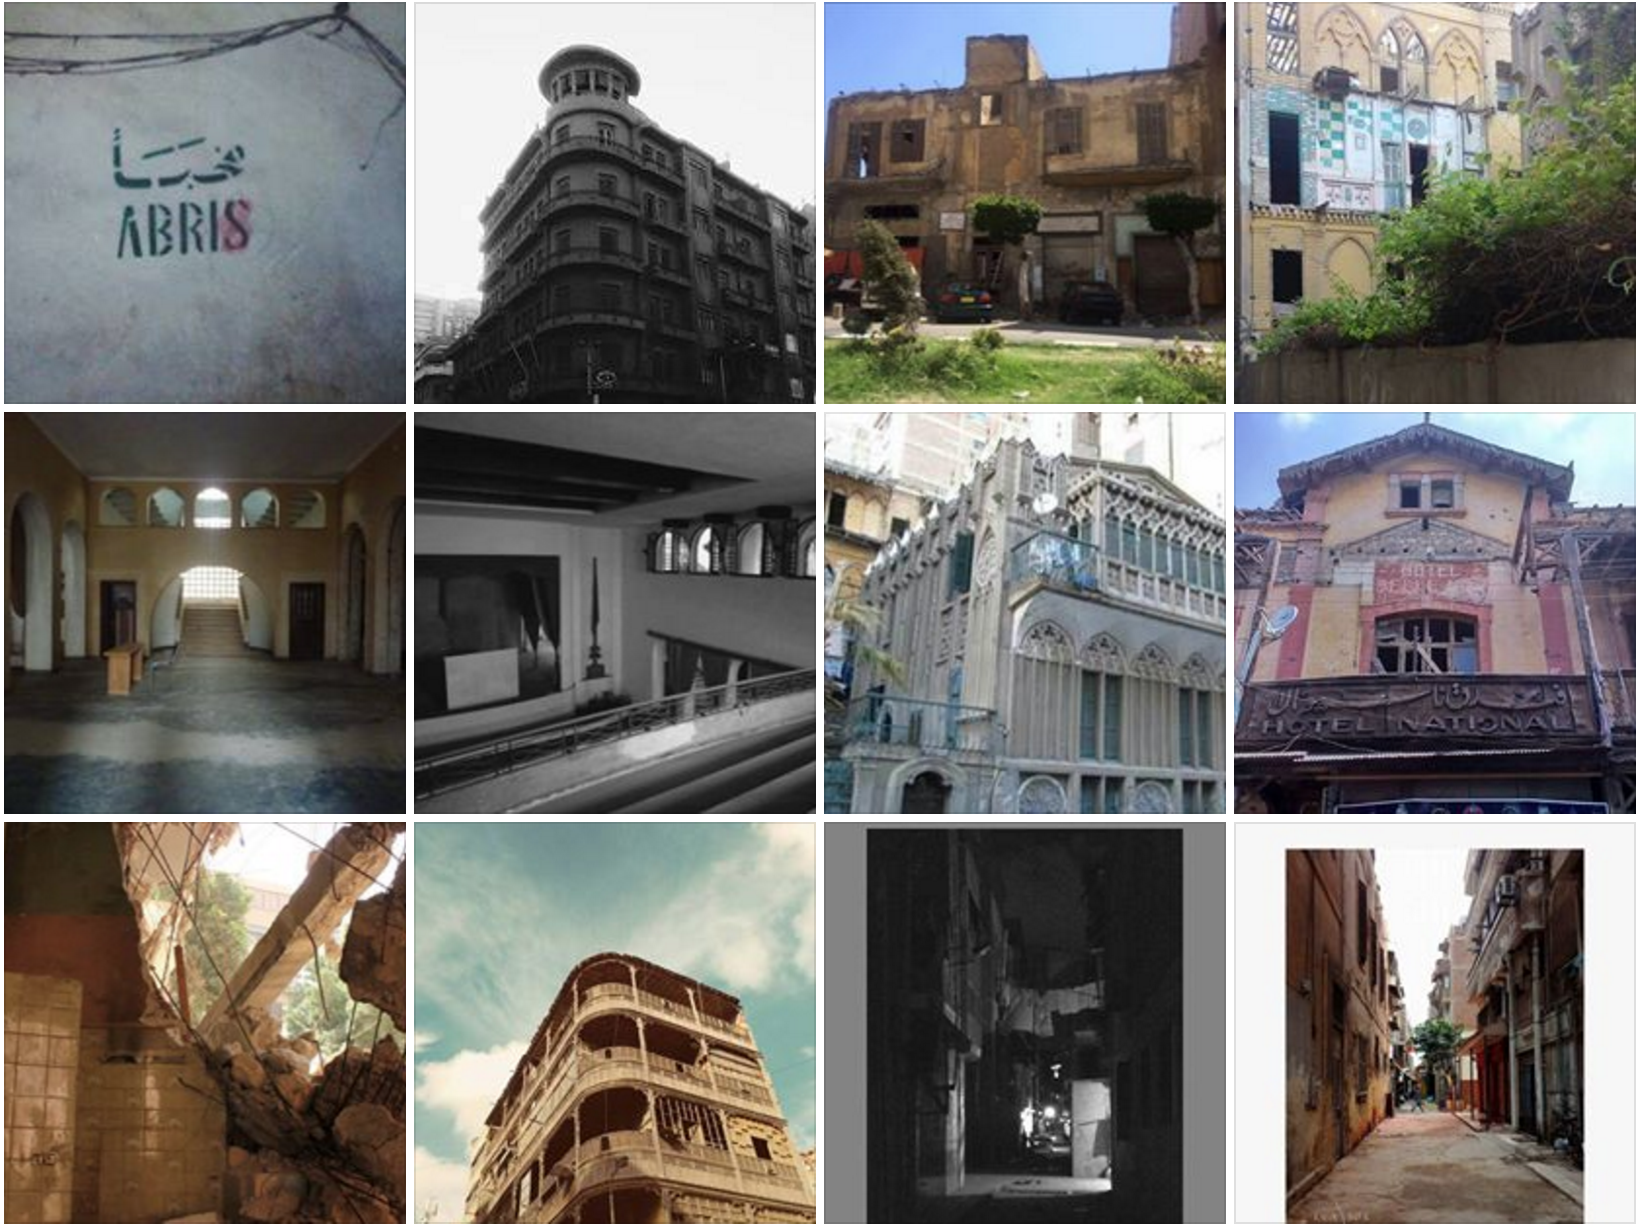 A collection of images  shared on Facebook  by audiences of the project What is an abandoned space, part of #cityshadows2016